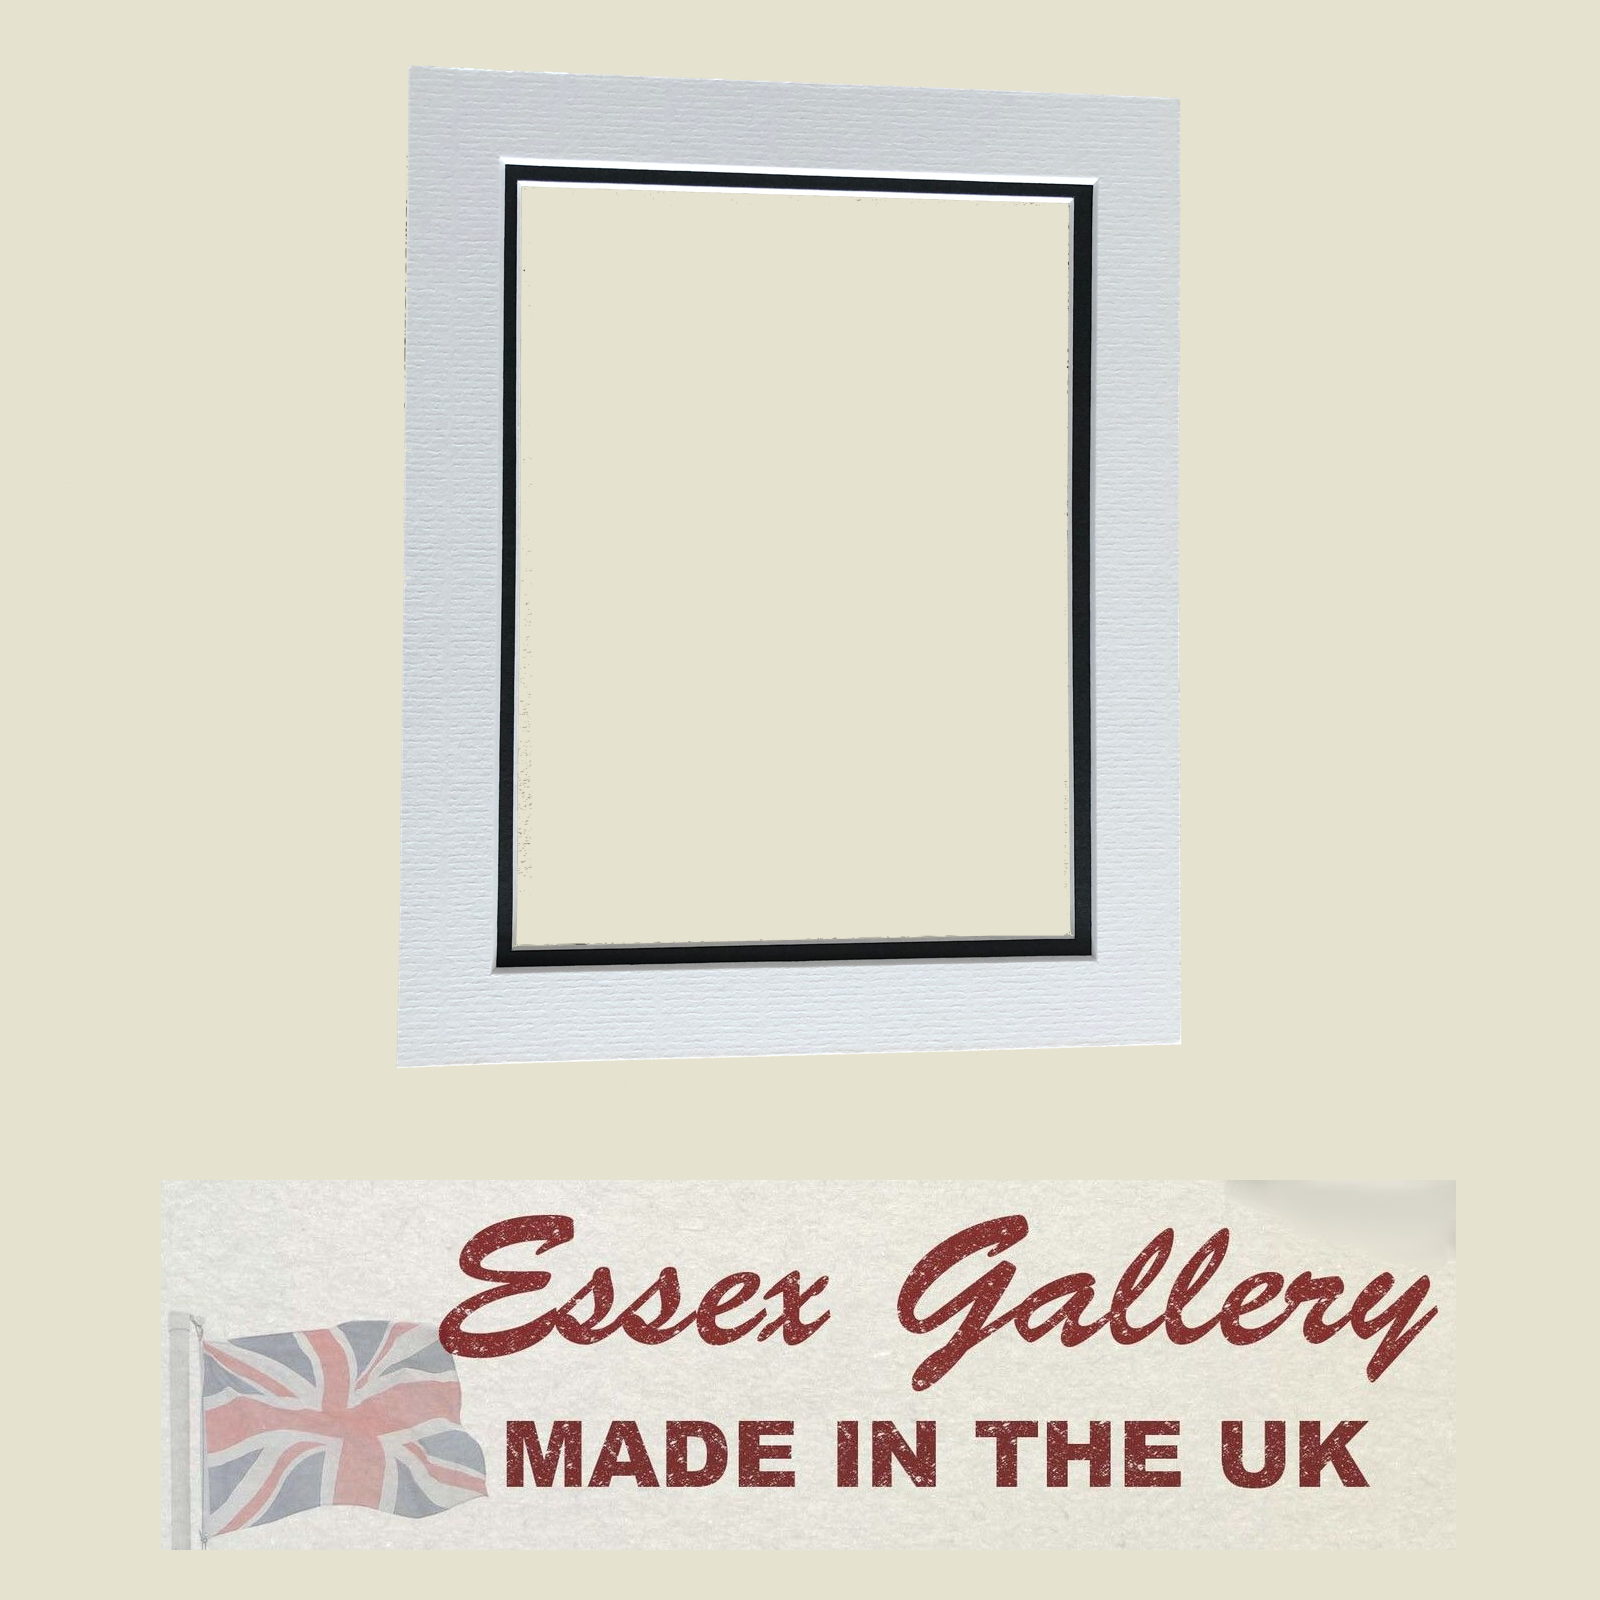 Bespoke Picture & Photo Frame Double Mounts - Cut to Any Size (Max Size 20x16) 3